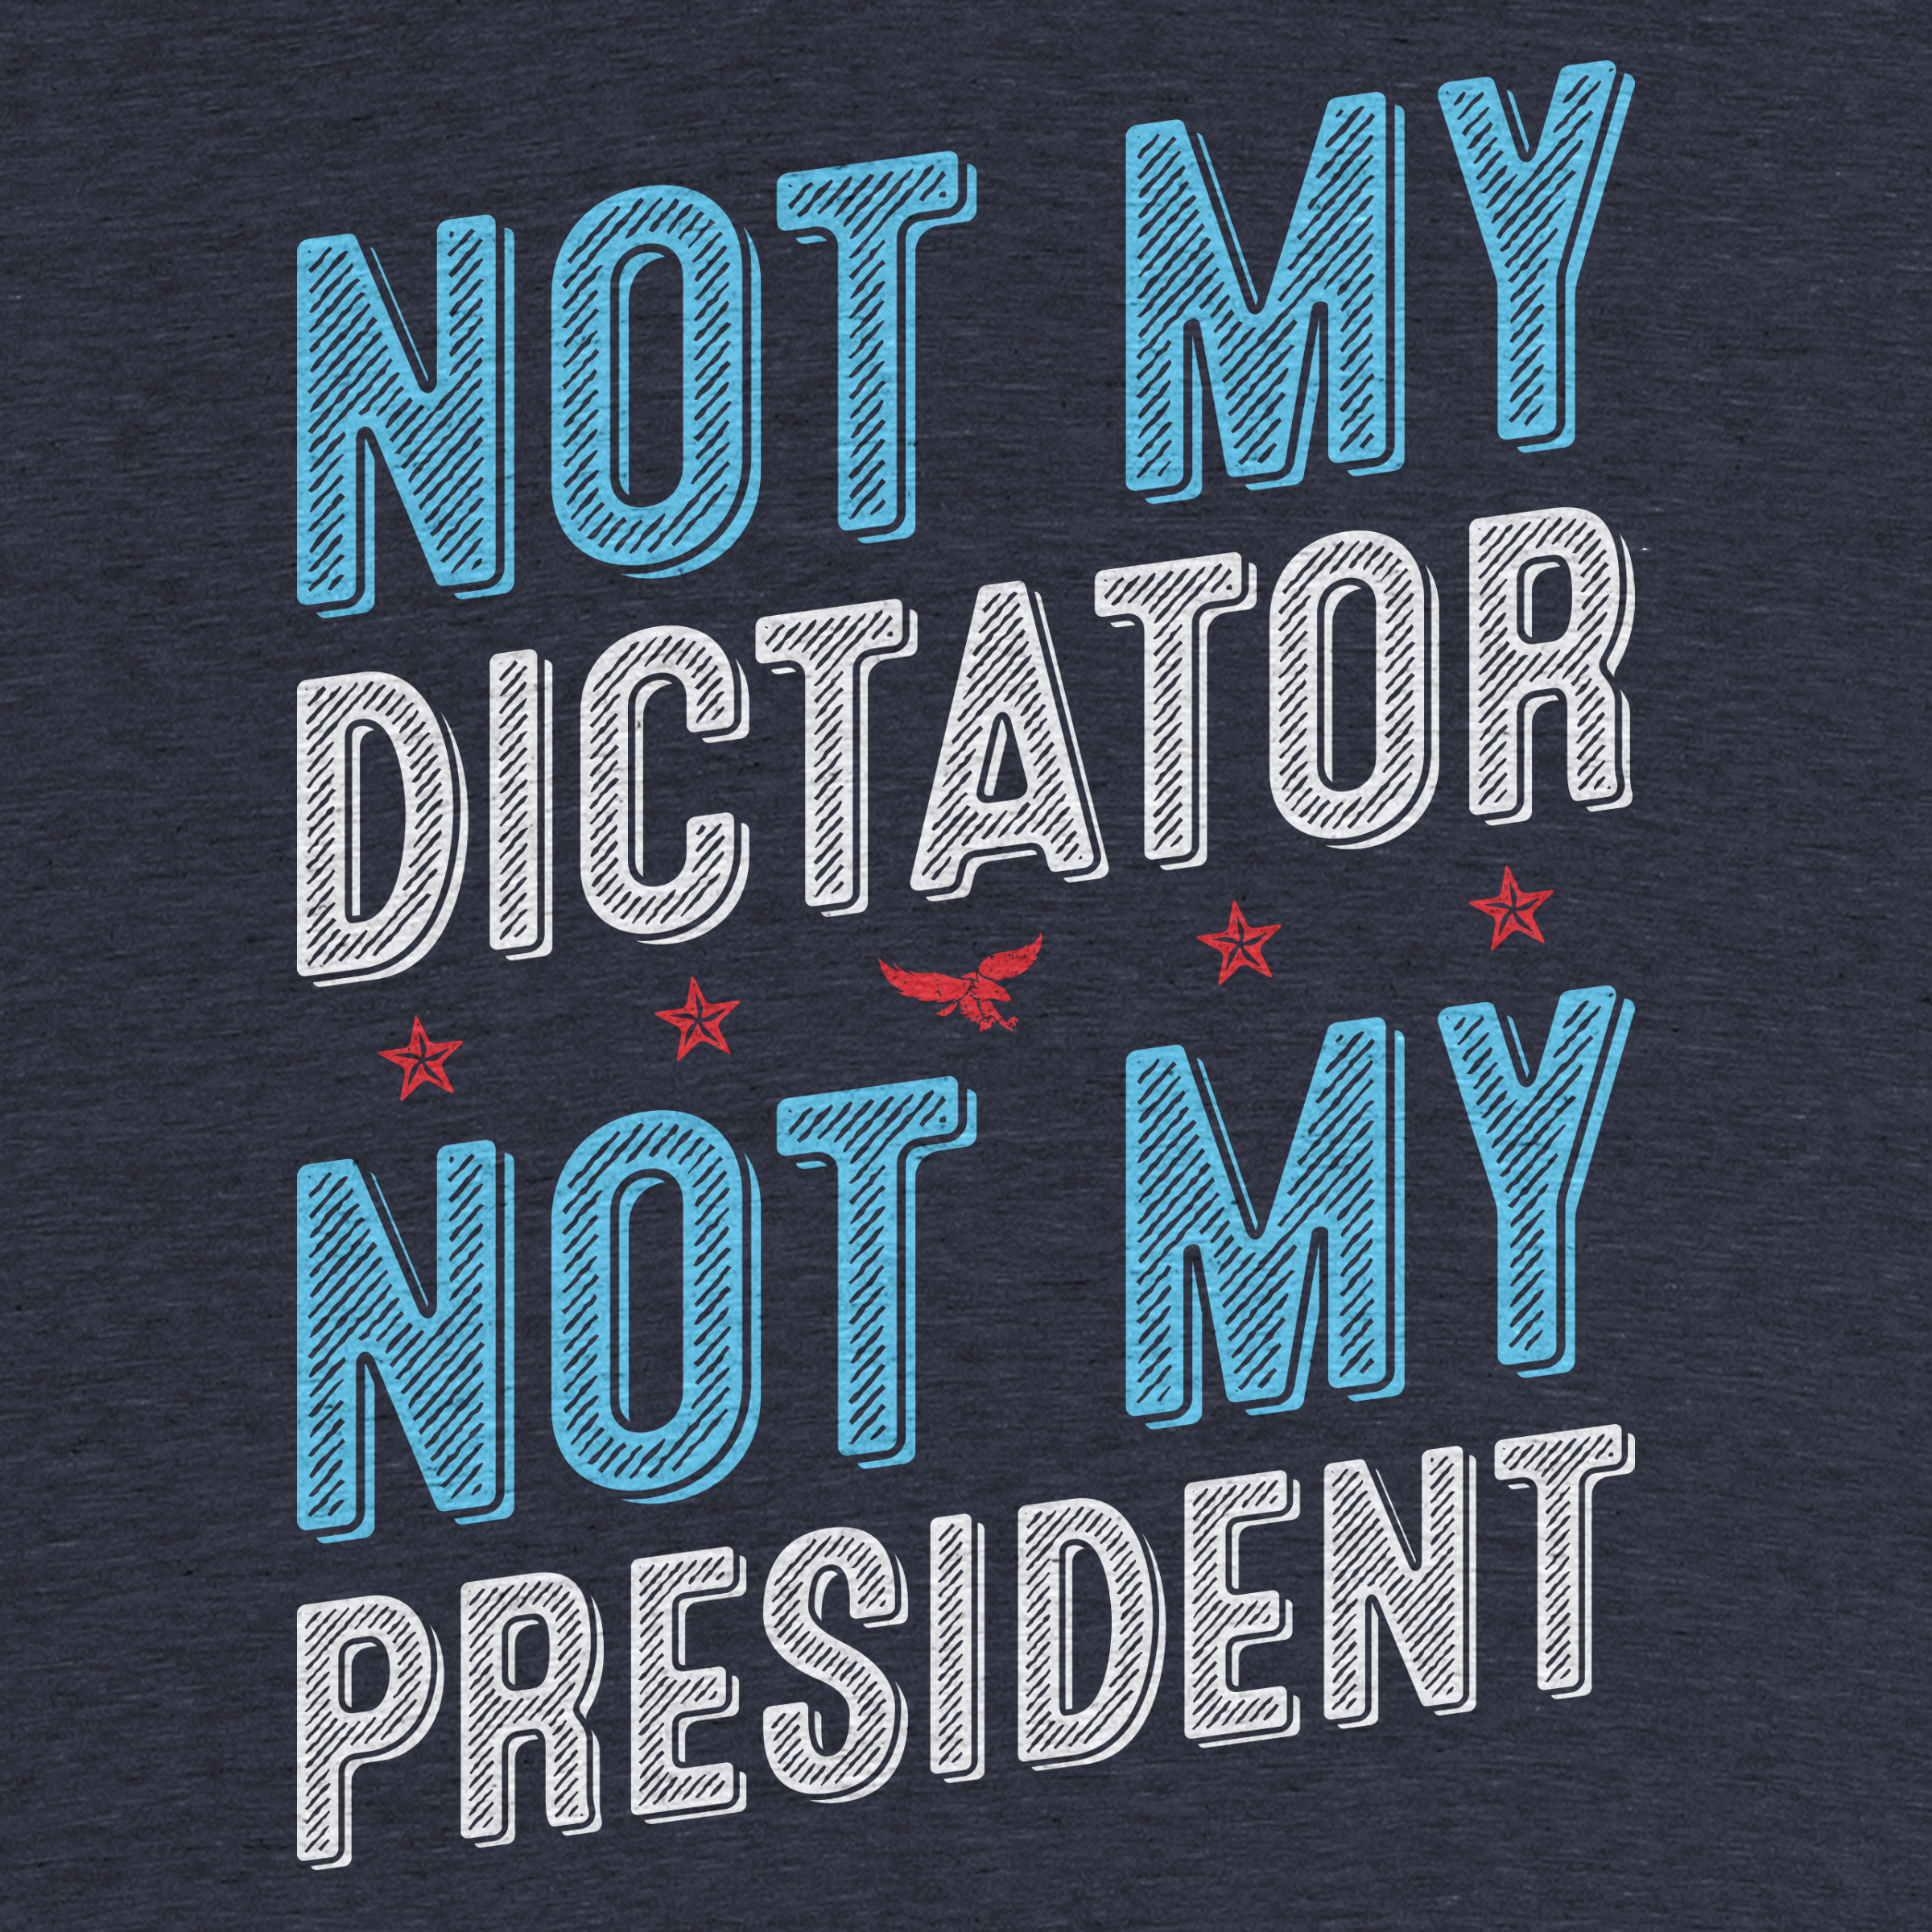 Not My Dictator